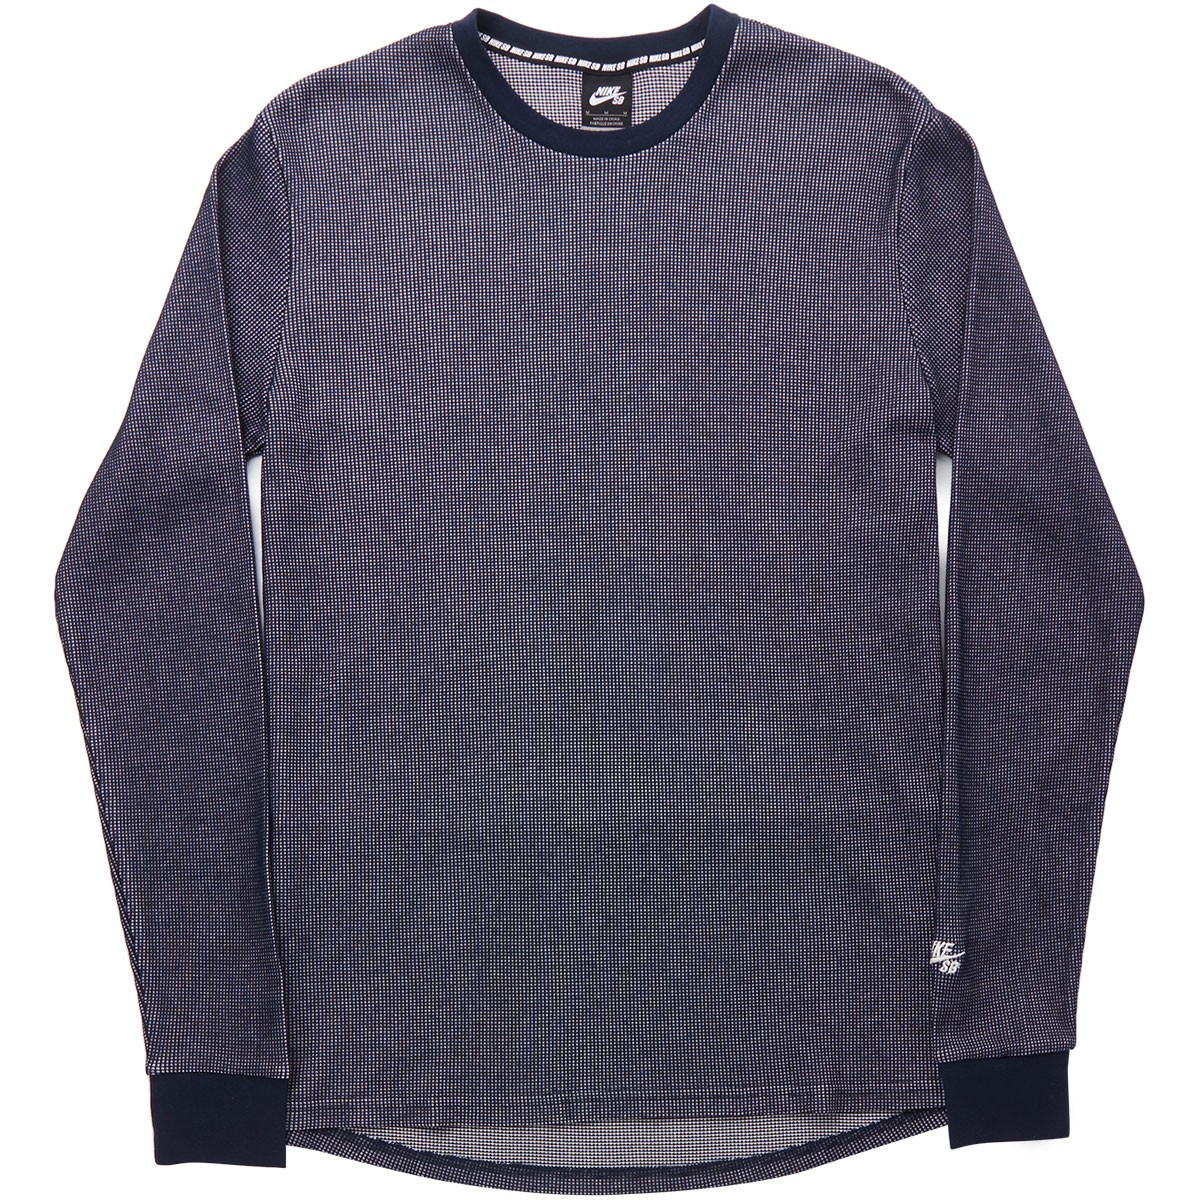 a2ced06cc66e Nike SB Long Sleeve Thermal Shirt - Obsidian Ivory